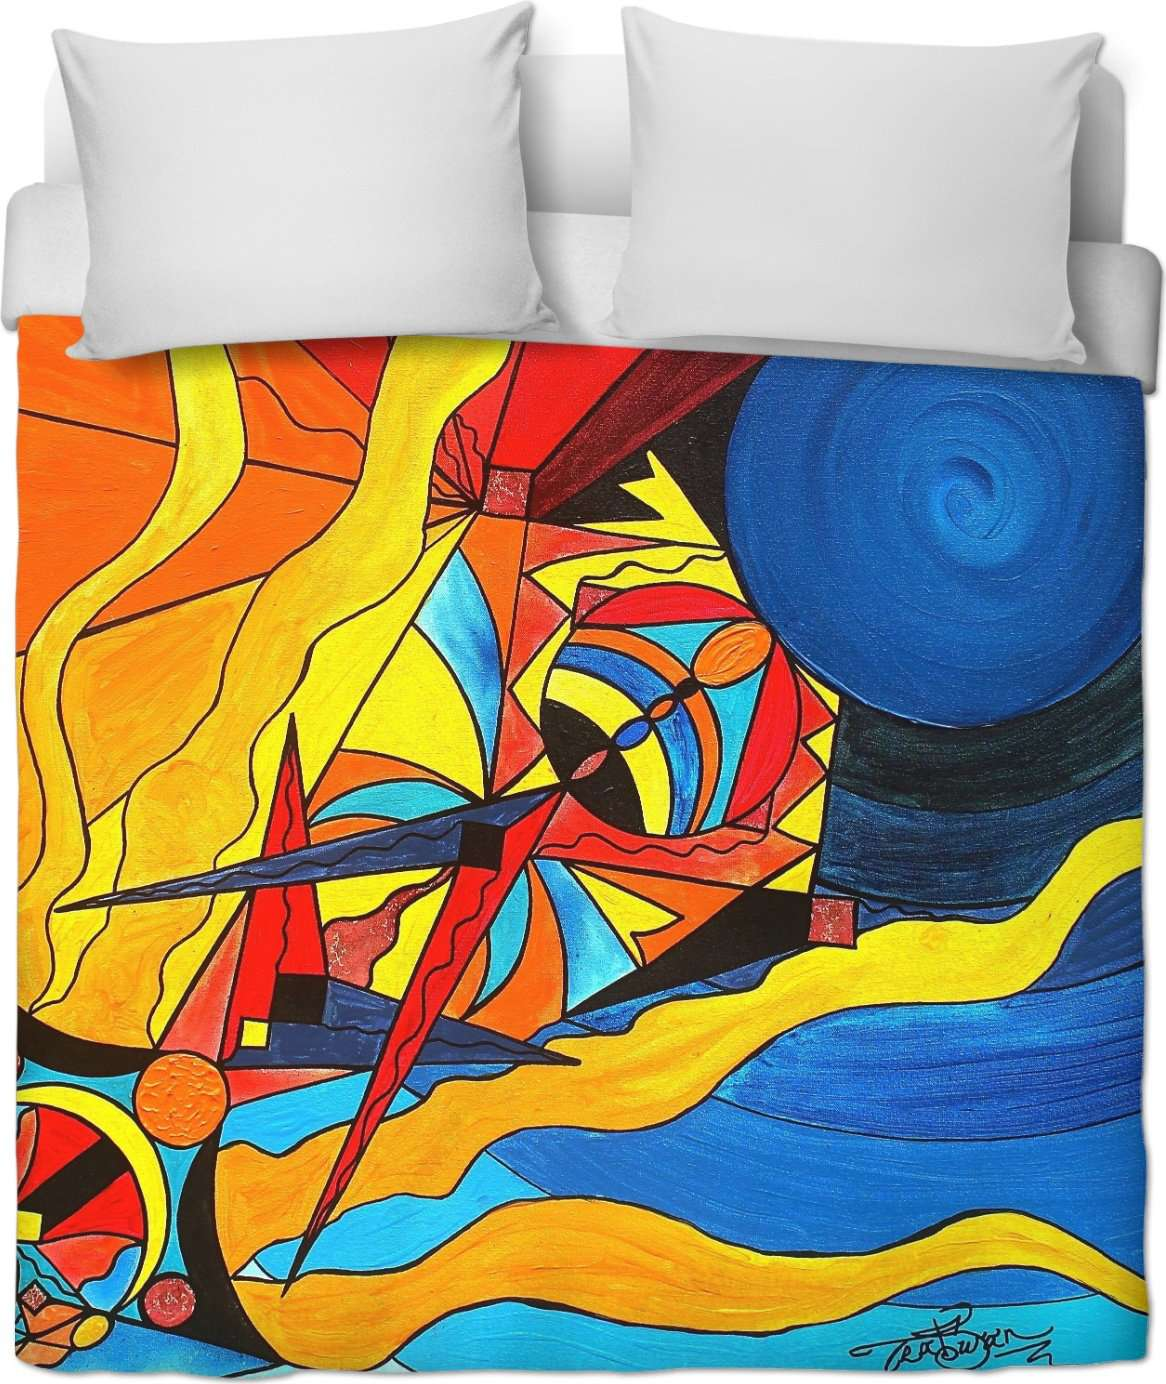 Exploration - Duvet Cover